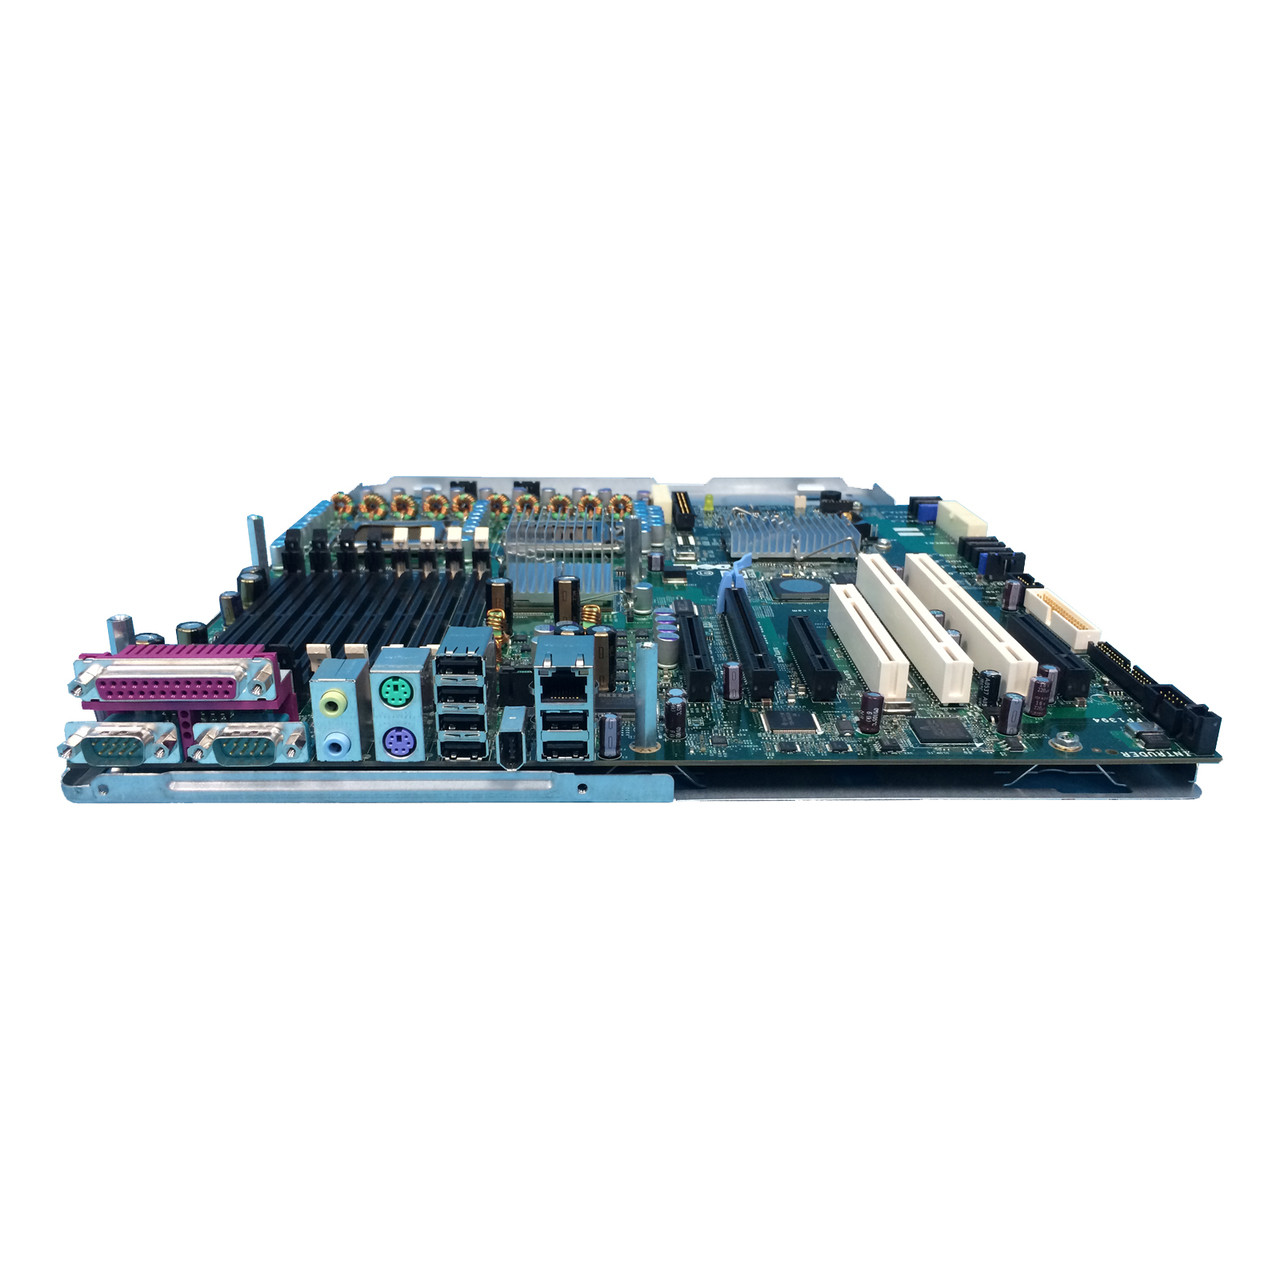 medium resolution of dell my171 precision 690 system board precision 690 motherboard dell laptop power supply pinout wiring diagram for dell 690 power supply